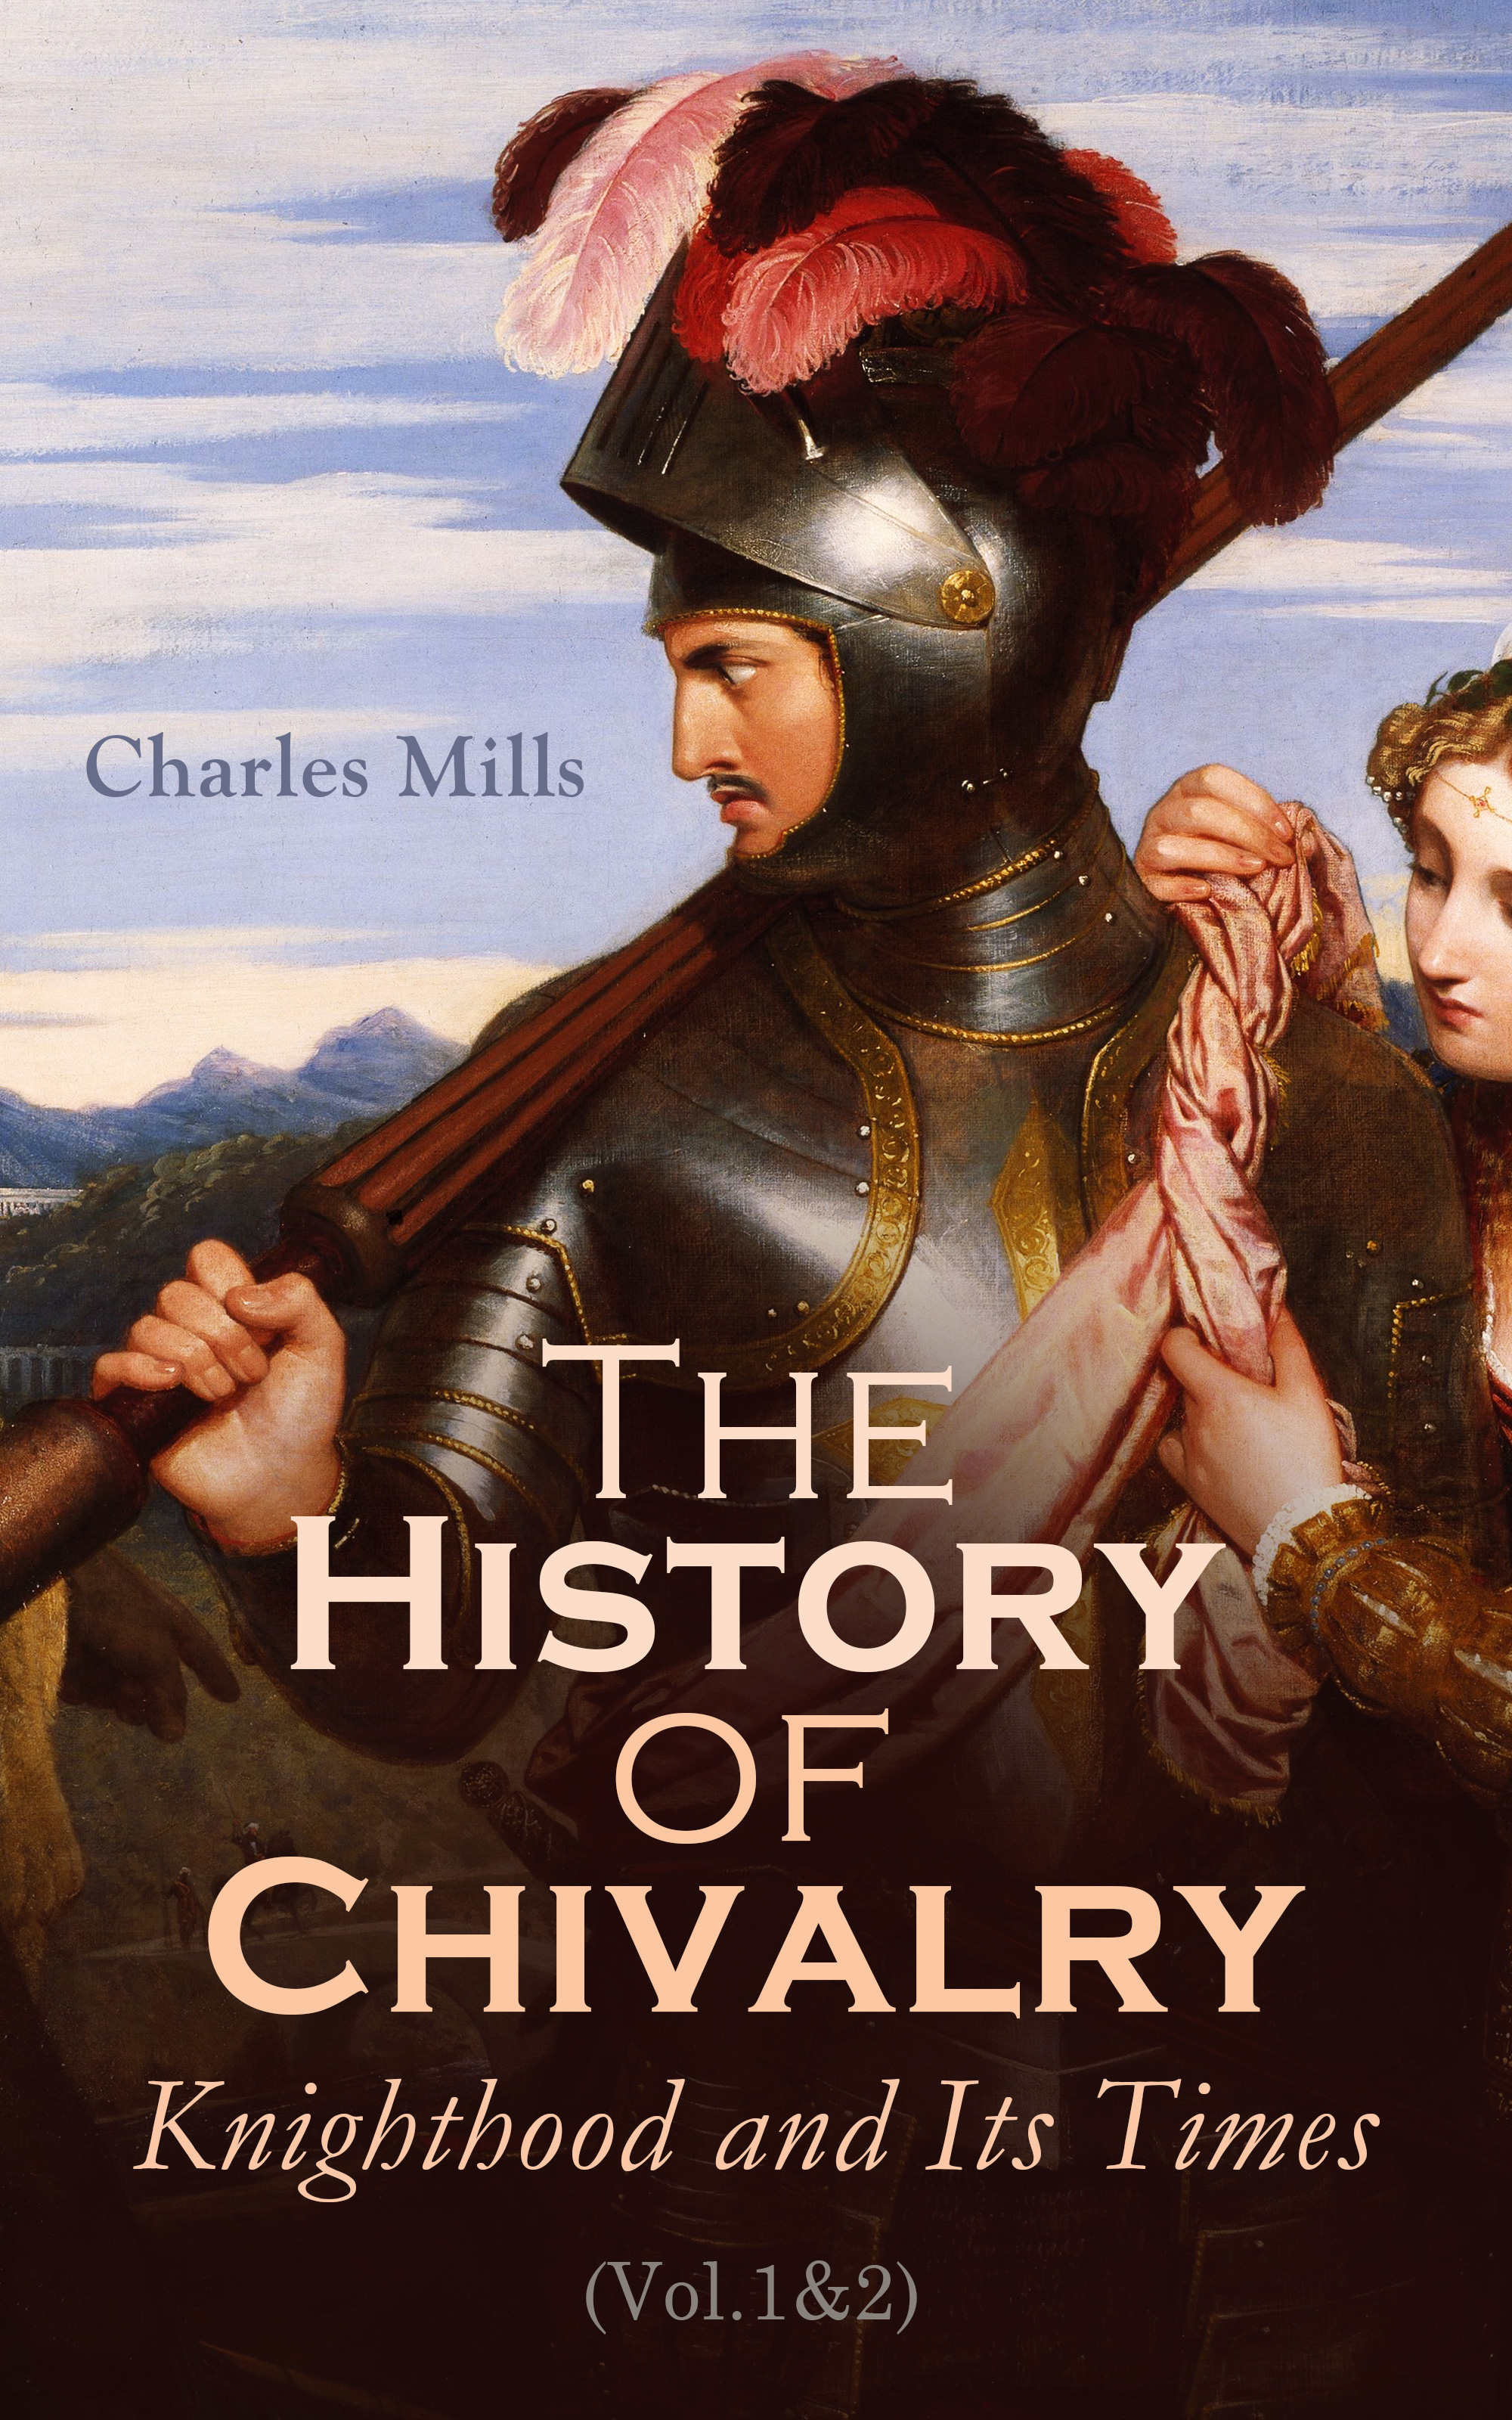 Charles Mills The History of Chivalry: Knighthood and Its Times (Vol.1&2) bucke charles ruins of ancient cities vol 1 of 2